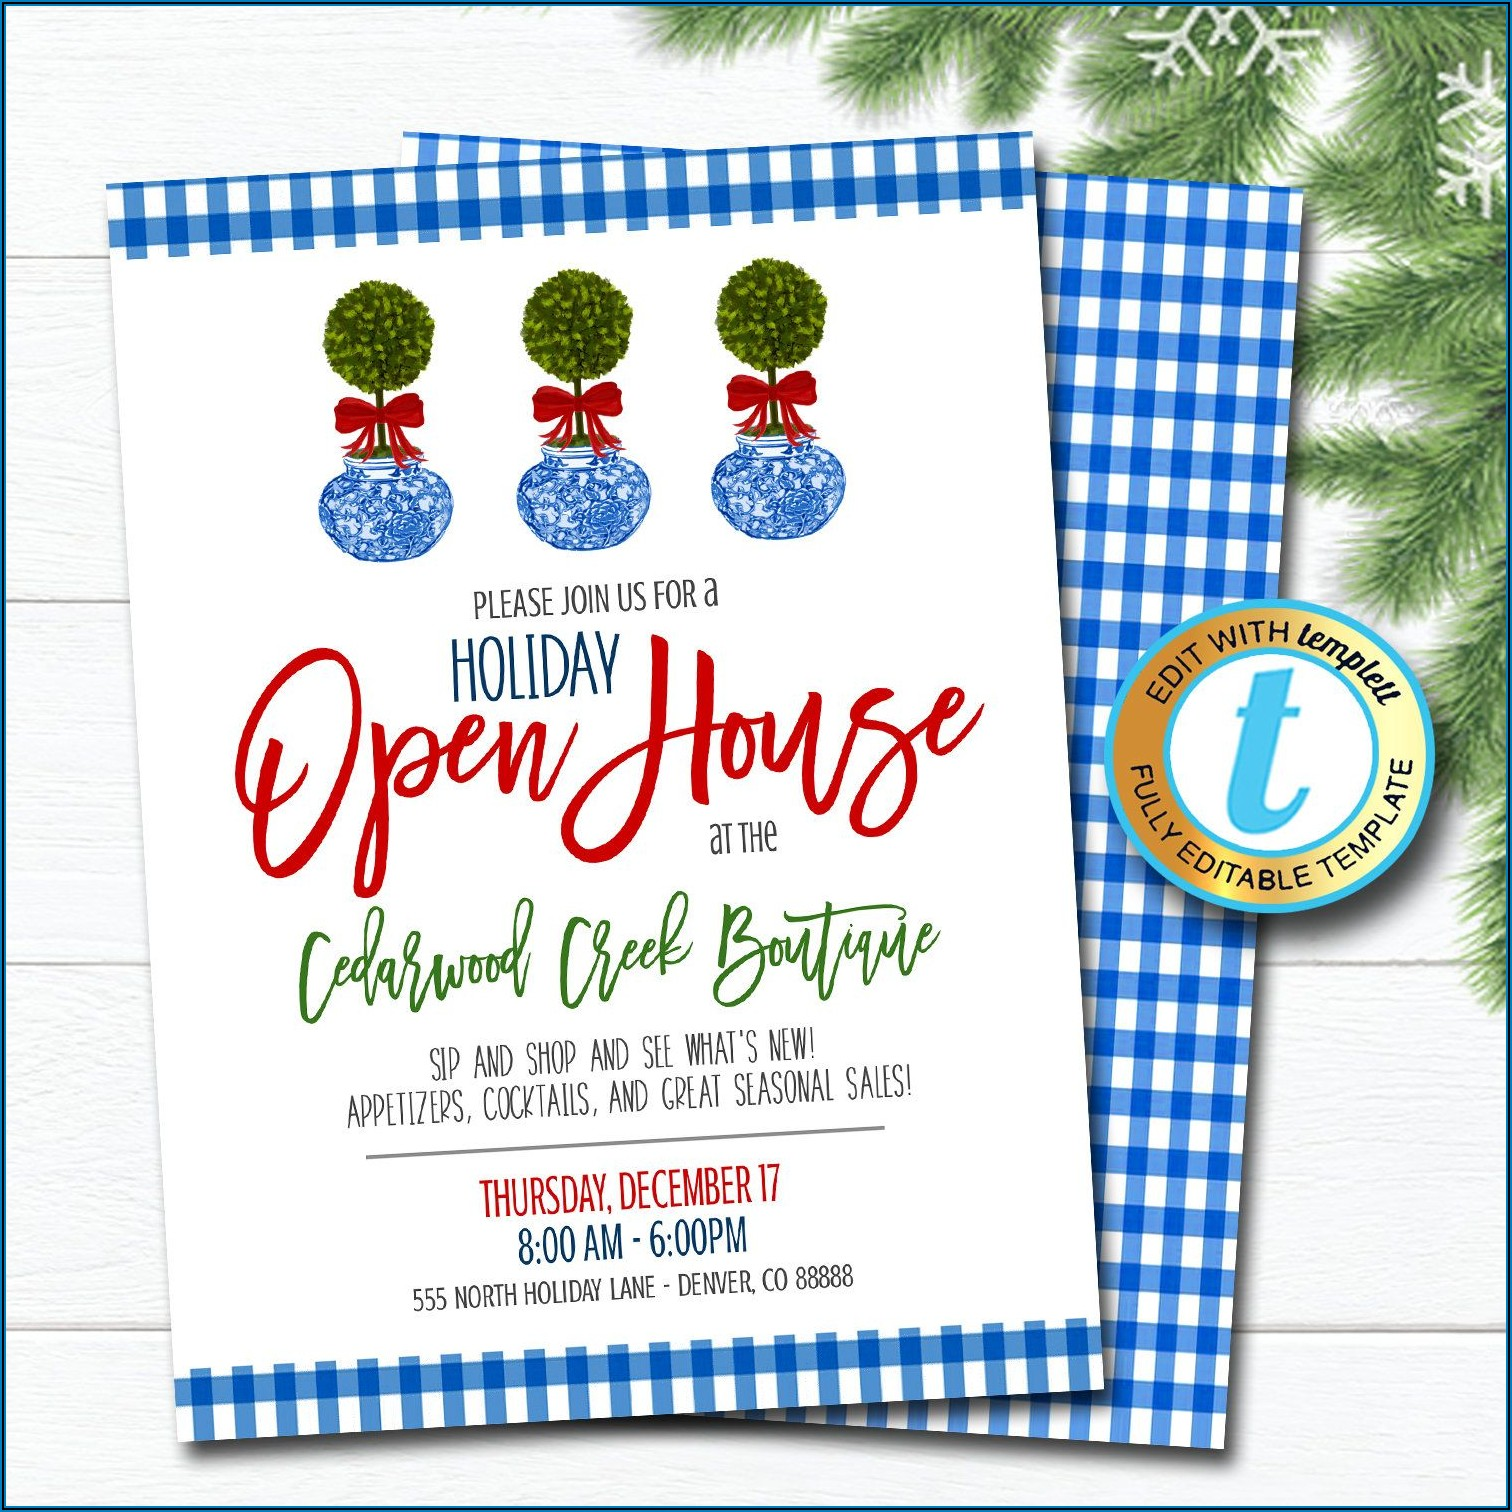 Business Open House Invitation Template